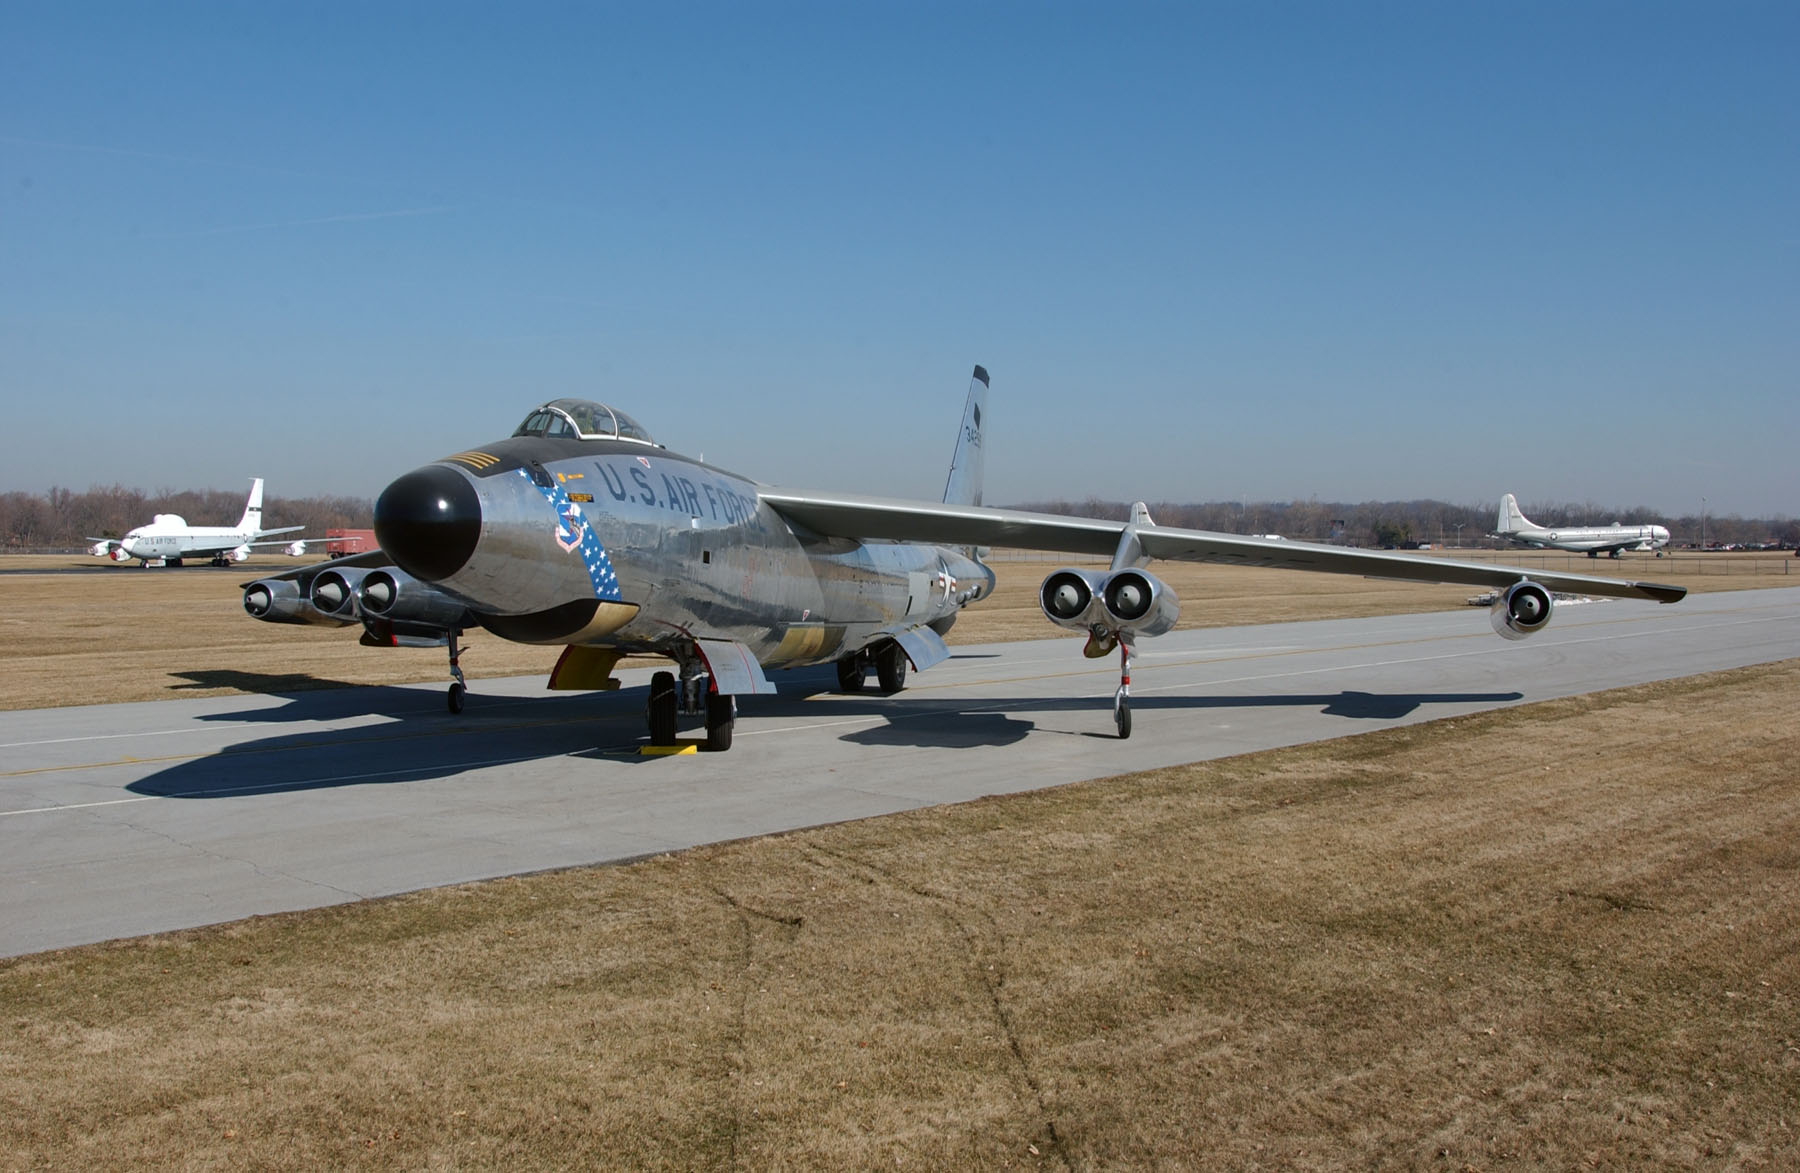 FileBoeing RBH At The National Museum Of The US Air Forcejpg - Air force museums in us